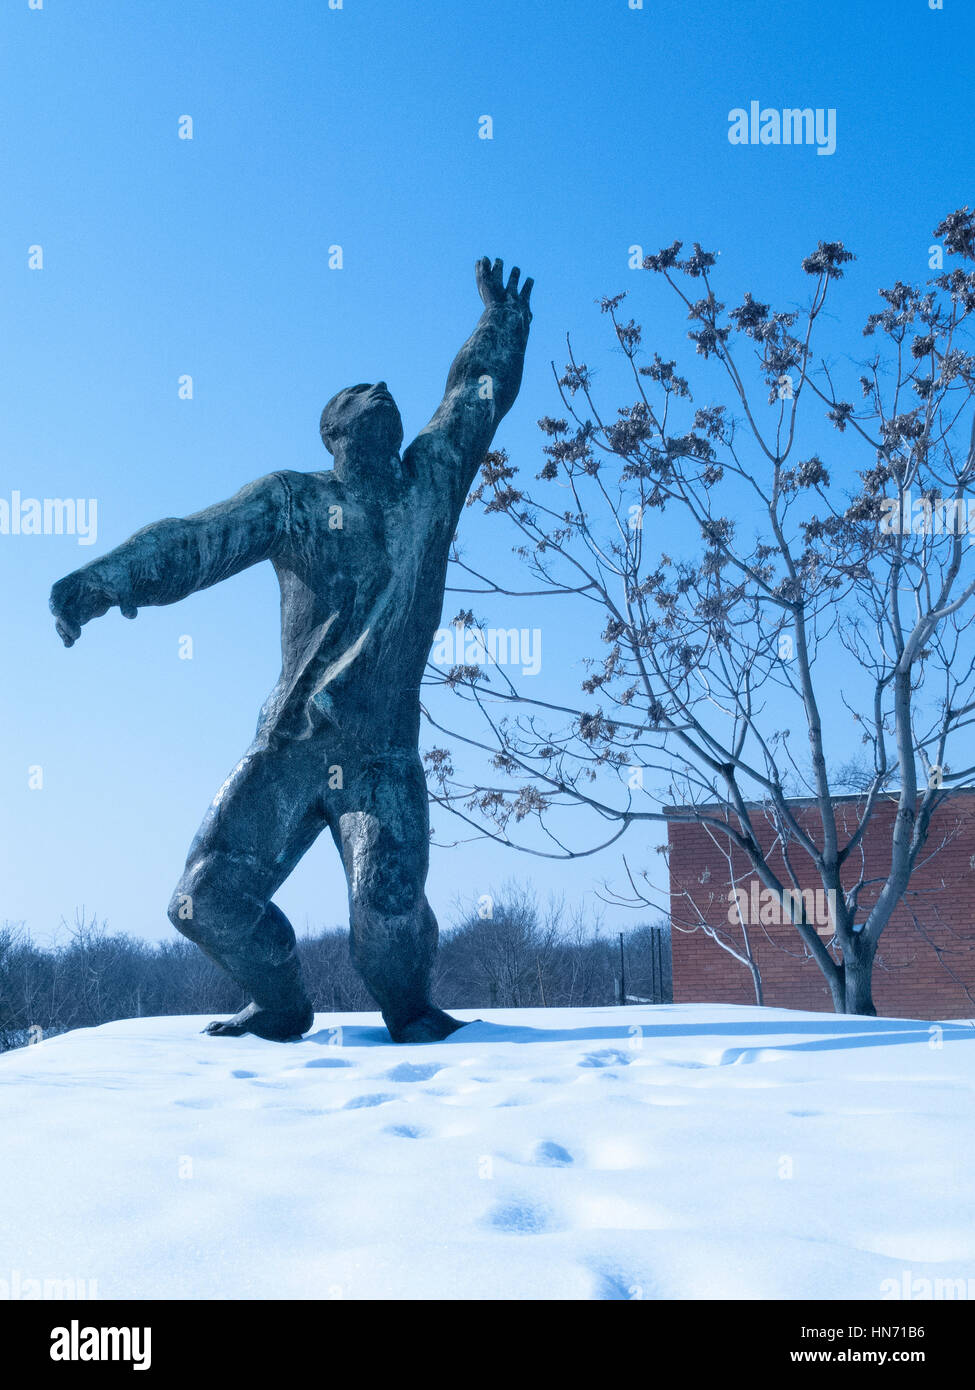 Martyrs Monument, one of the statues in a Snow covered Memento Park, Budapest.. - Stock Image